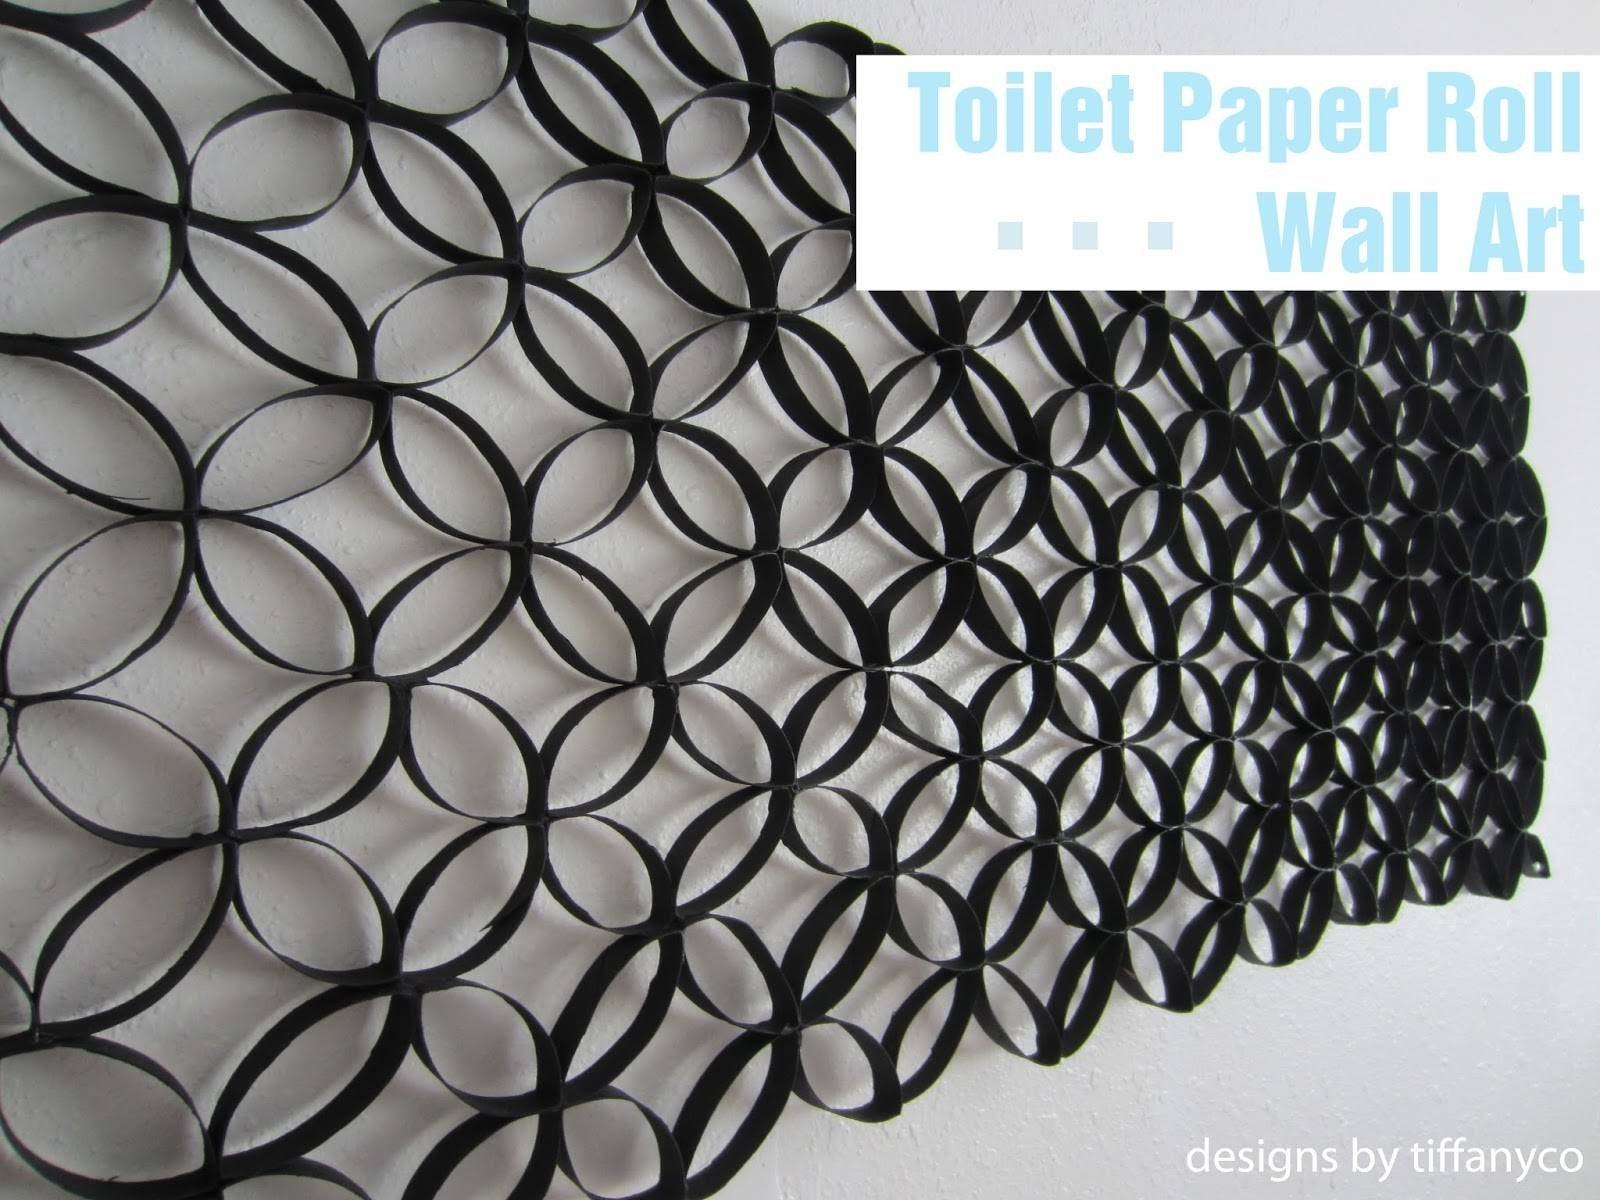 Toilet Paper Roll Wall Art – Designstiffanyco Inside Most Recently Released Tiffany And Co Wall Art (View 10 of 30)